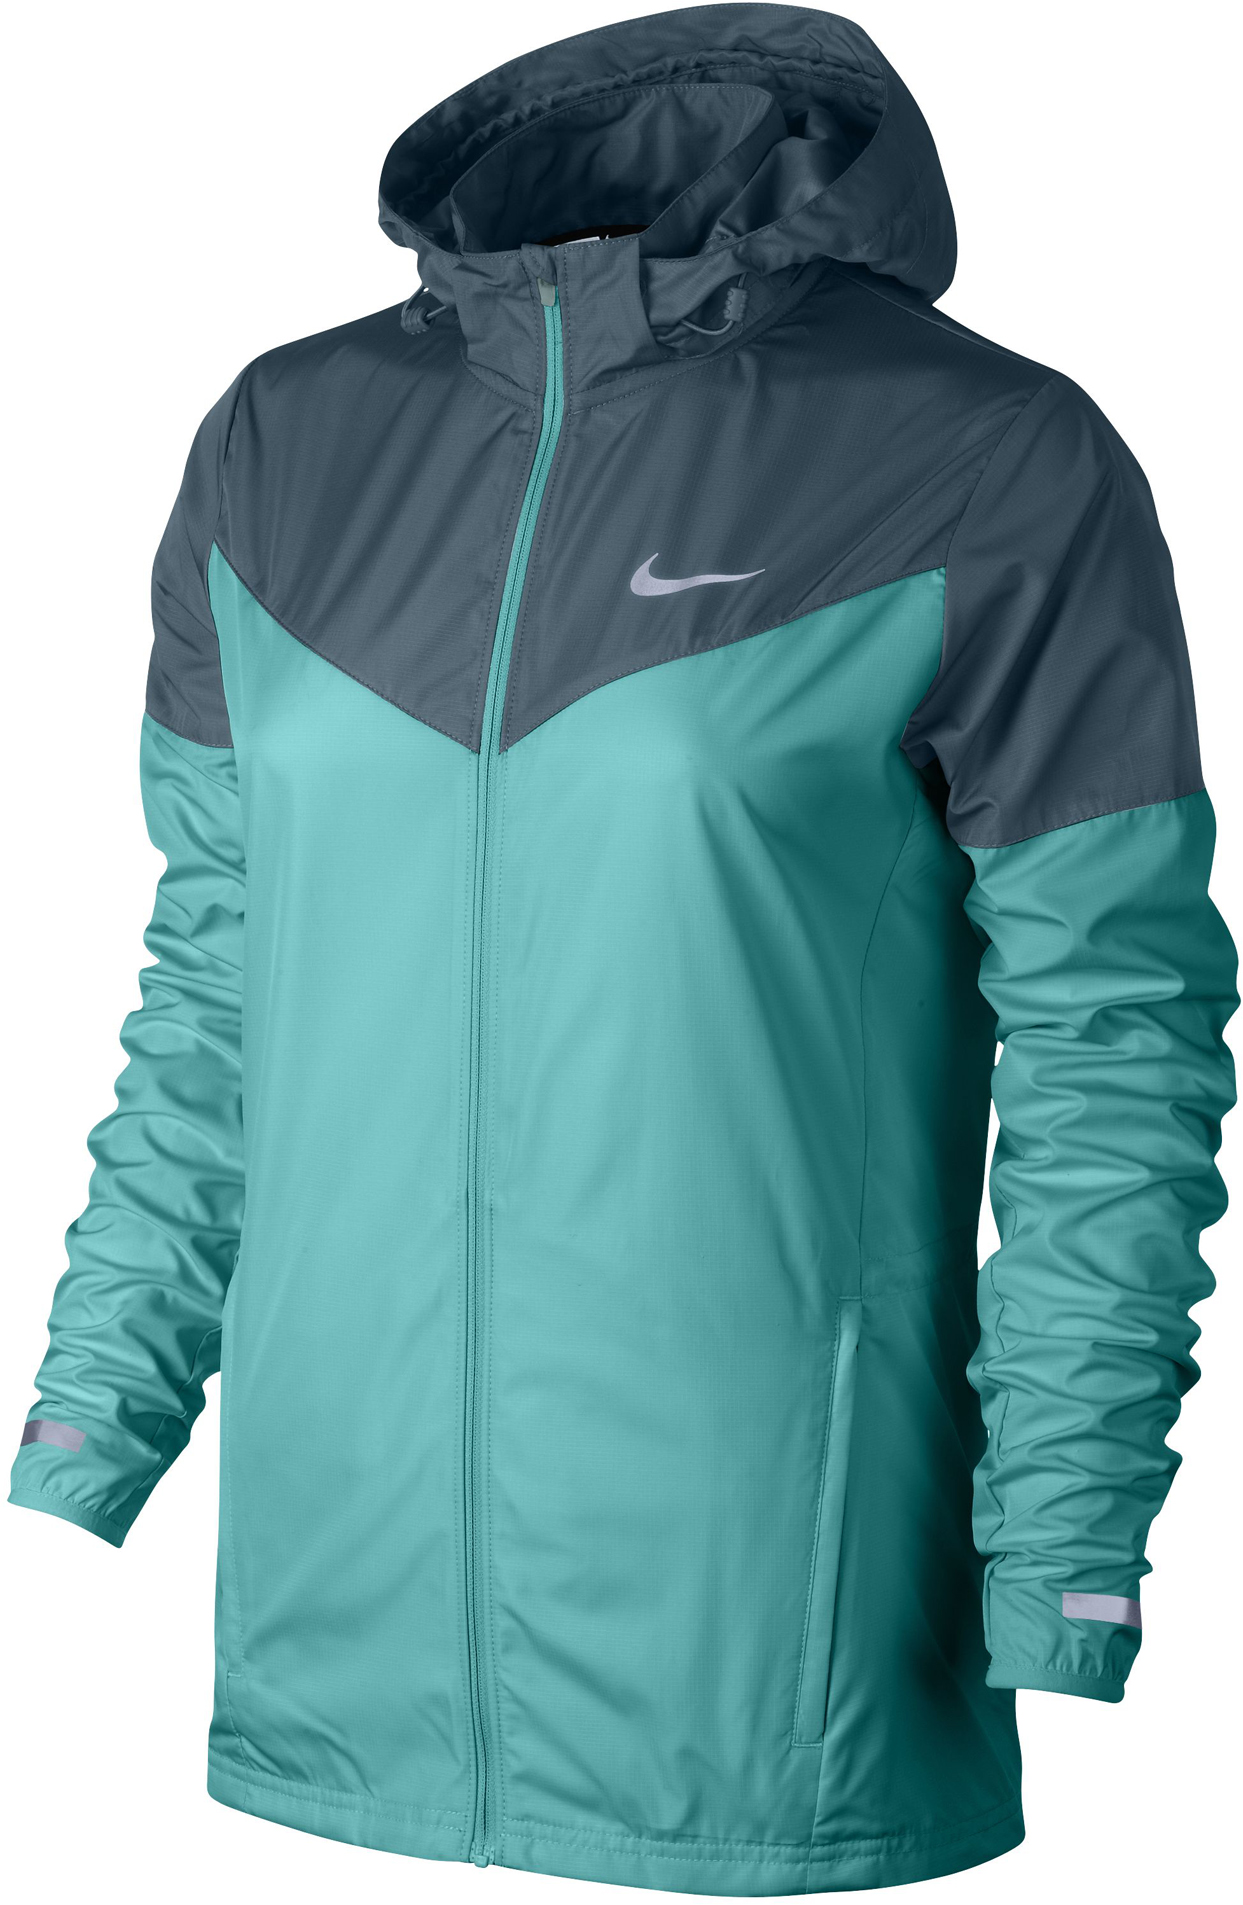 Vestes | Nike | Woman's Impossibly Light Jacket SU15